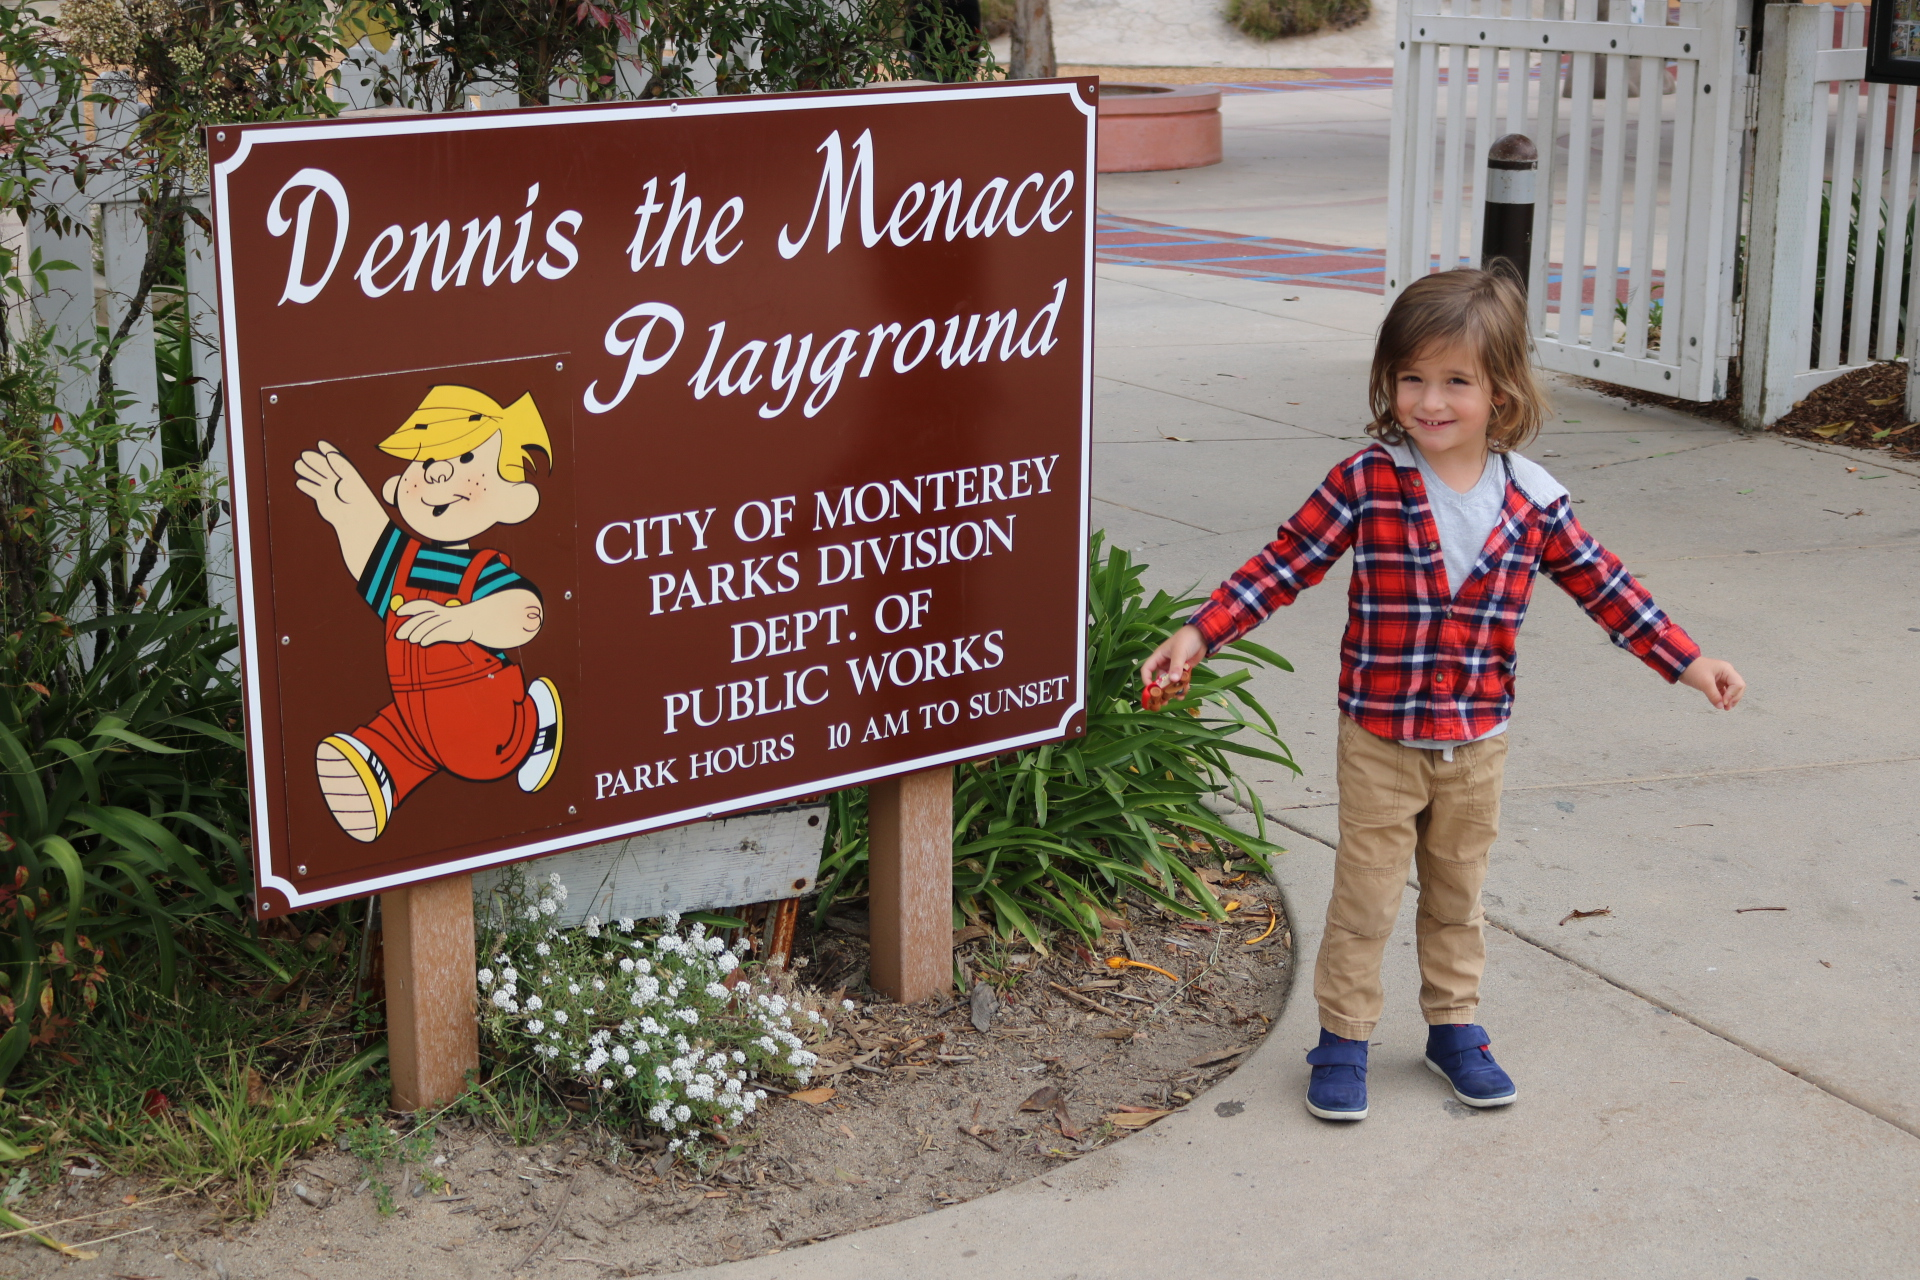 Dennis The Menace Playground in Monterey